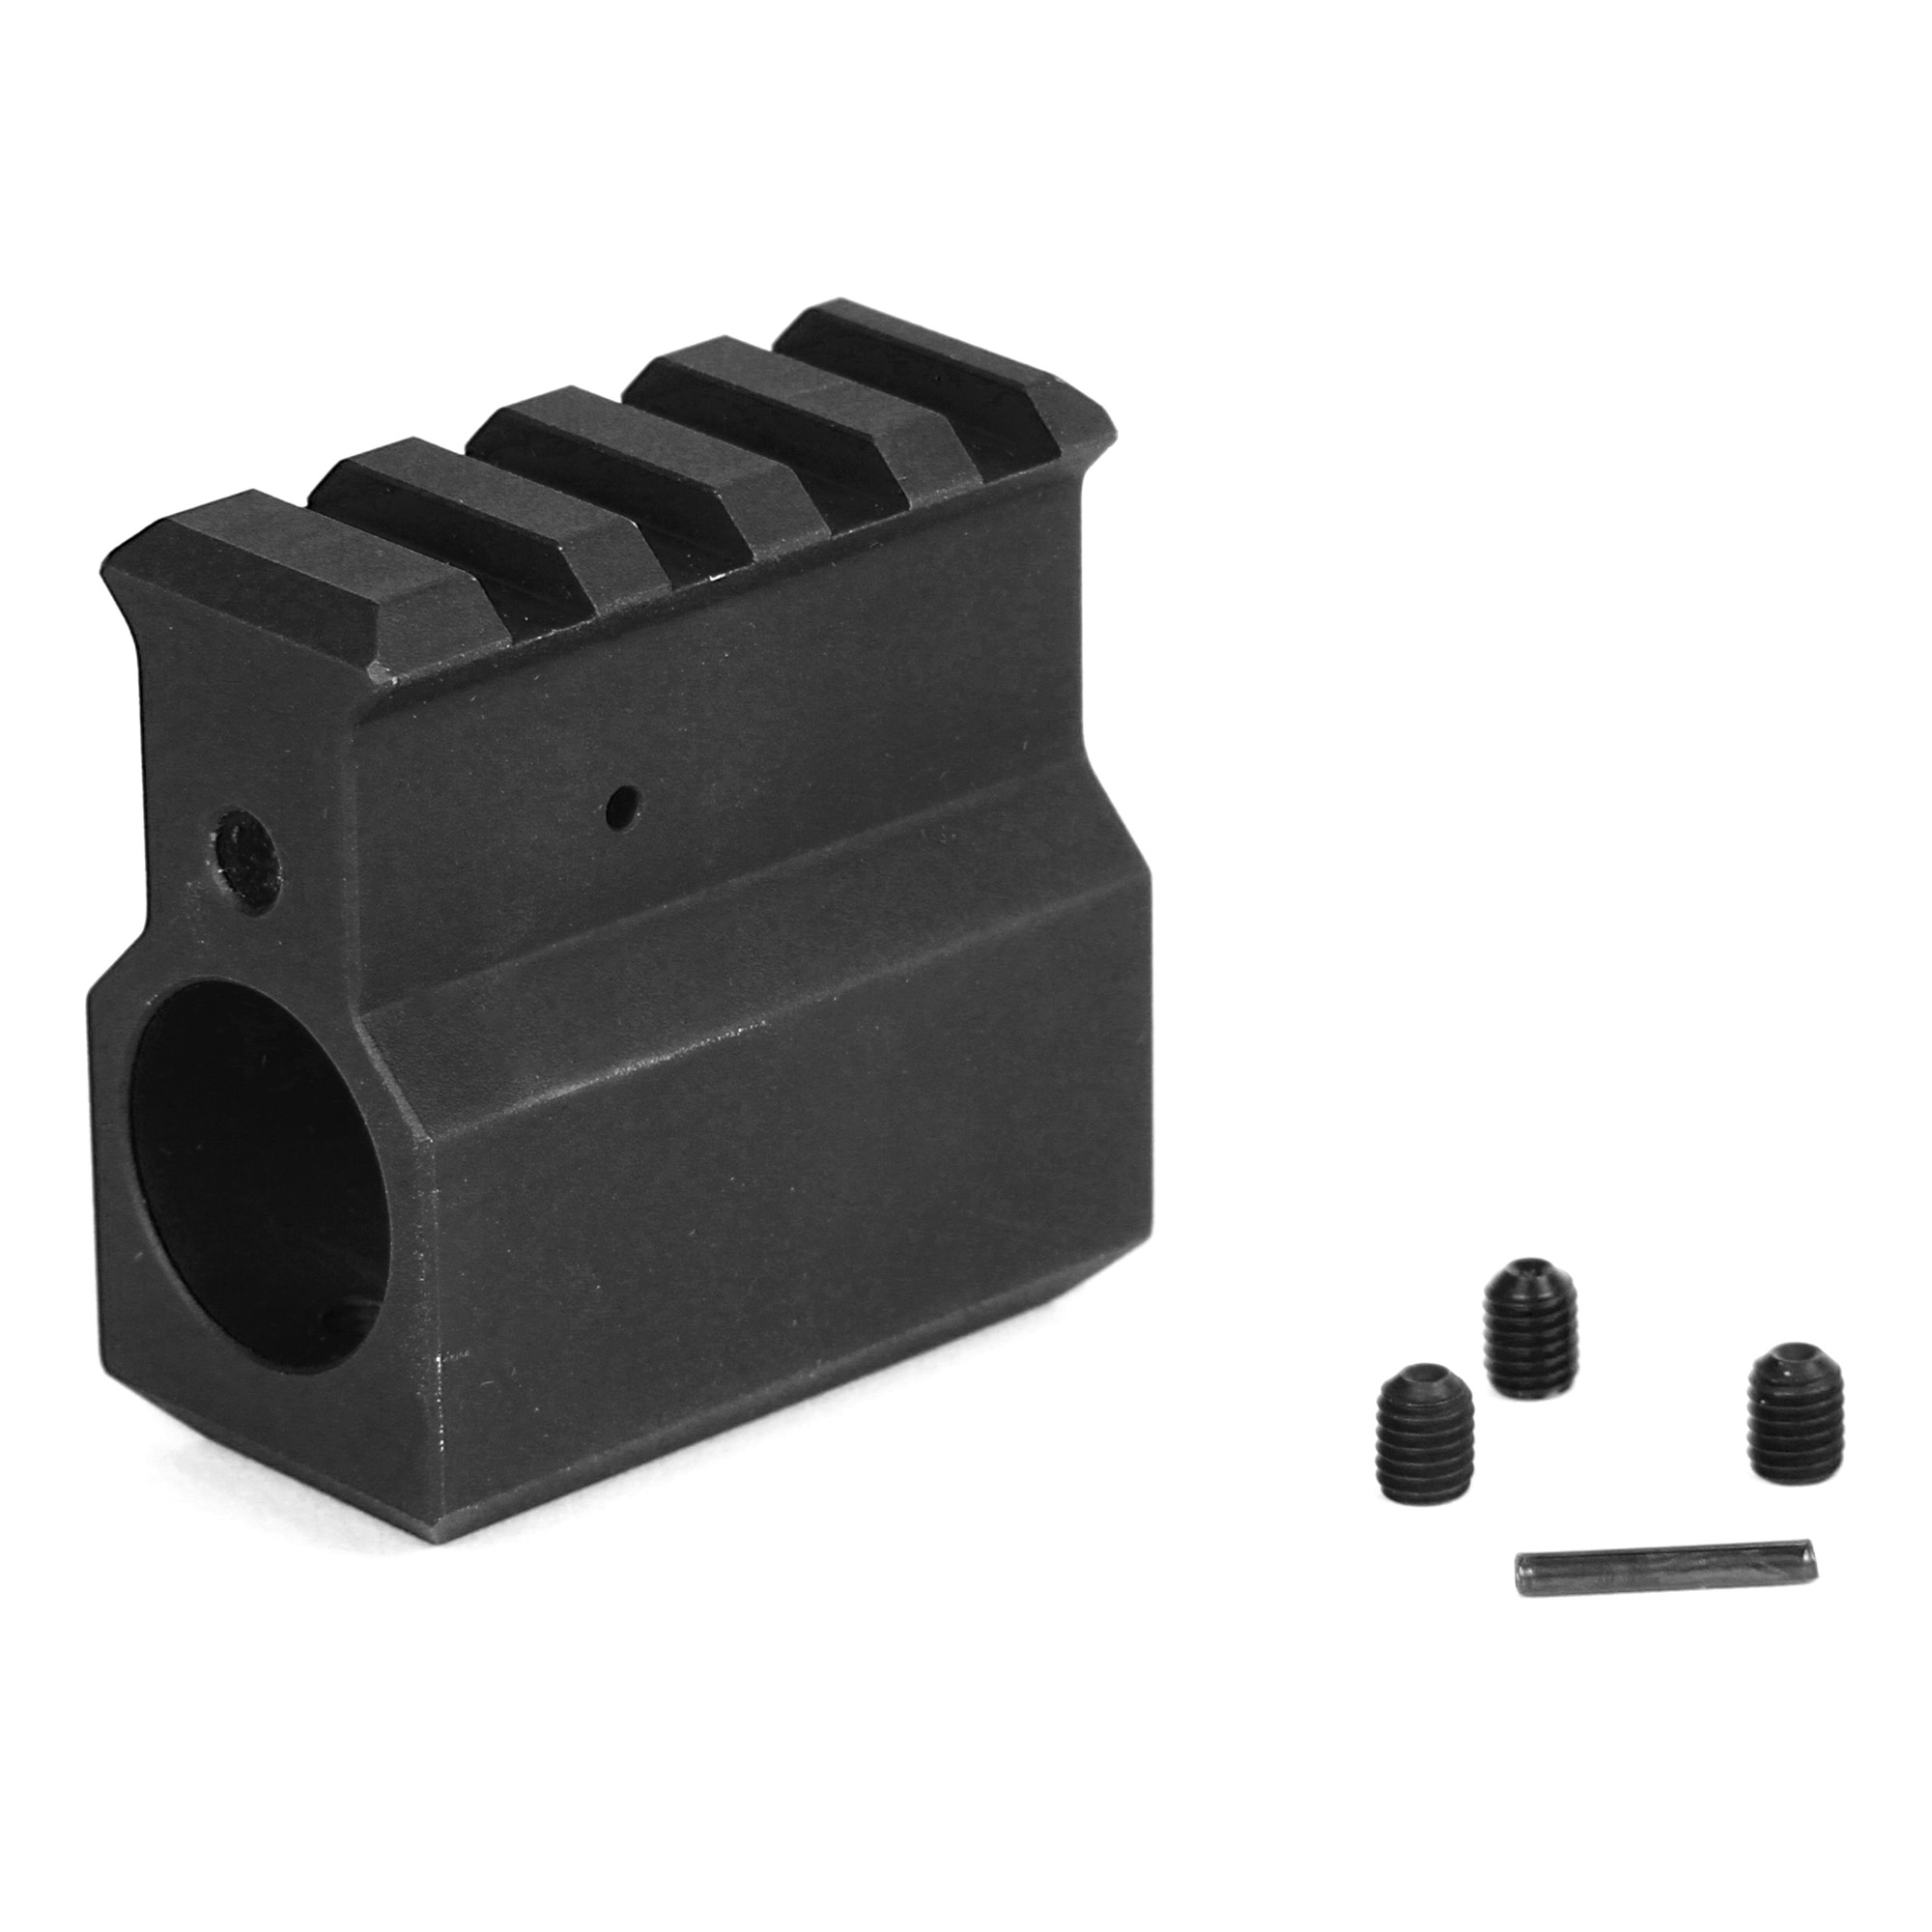 The LBE upper receiver height .750 gas block with rail includes three set screws and is made in the USA.